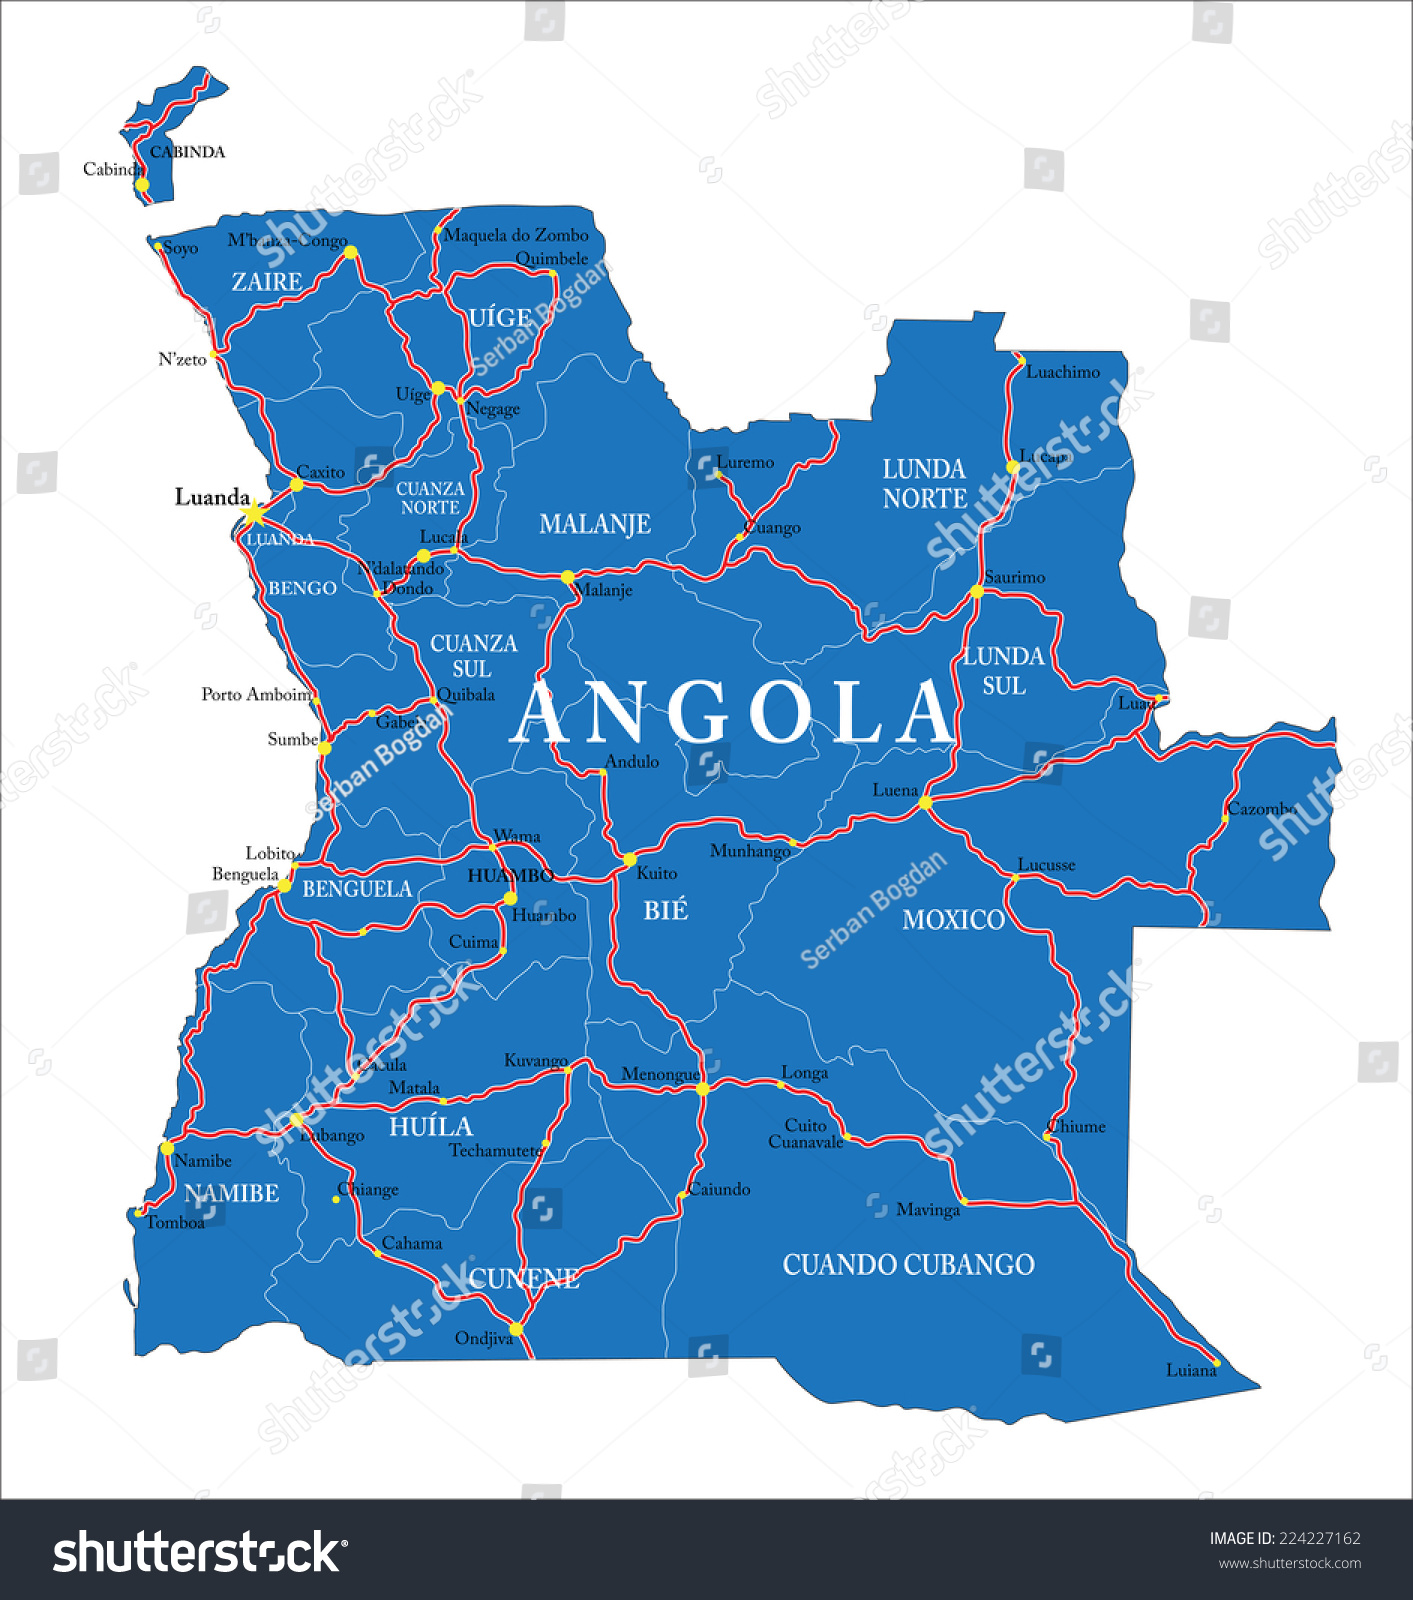 Angola Map Stock Vector Shutterstock - Angola map